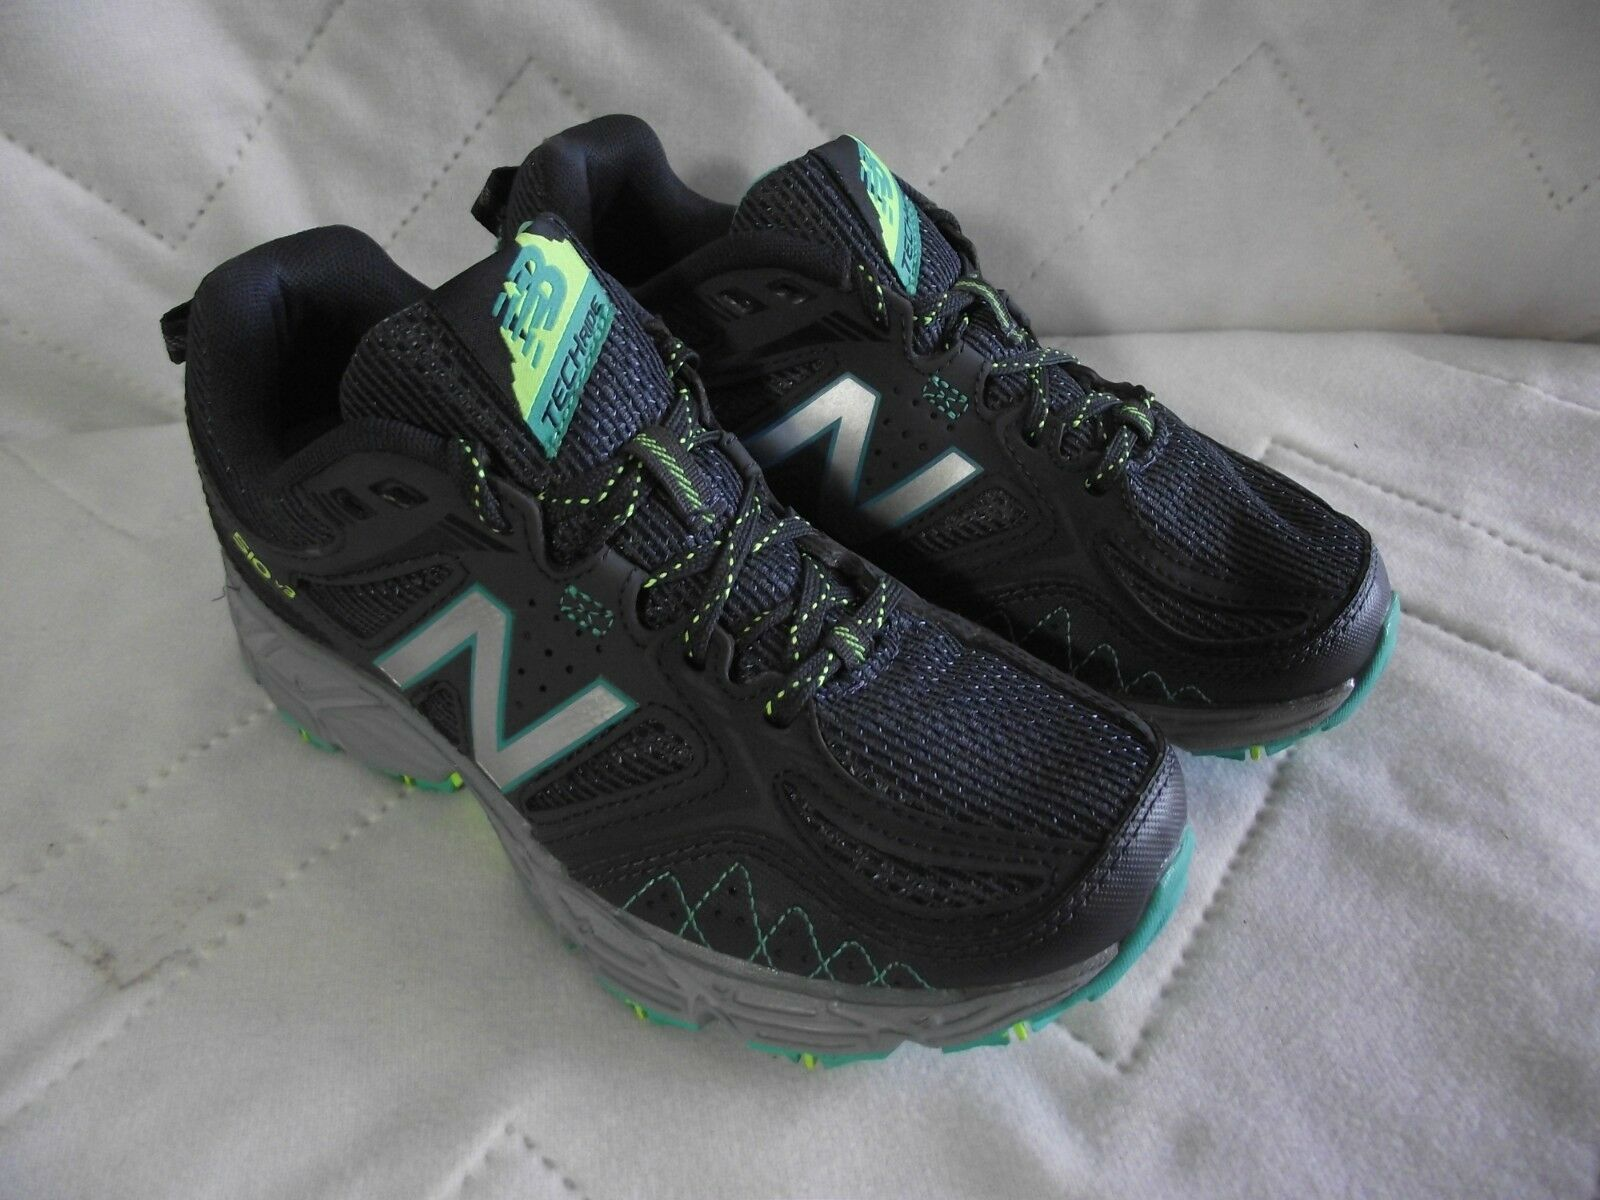 New Balance 510 V3 Running shoes Womens Size 5 WT510LB3 Navy Aqua EUC